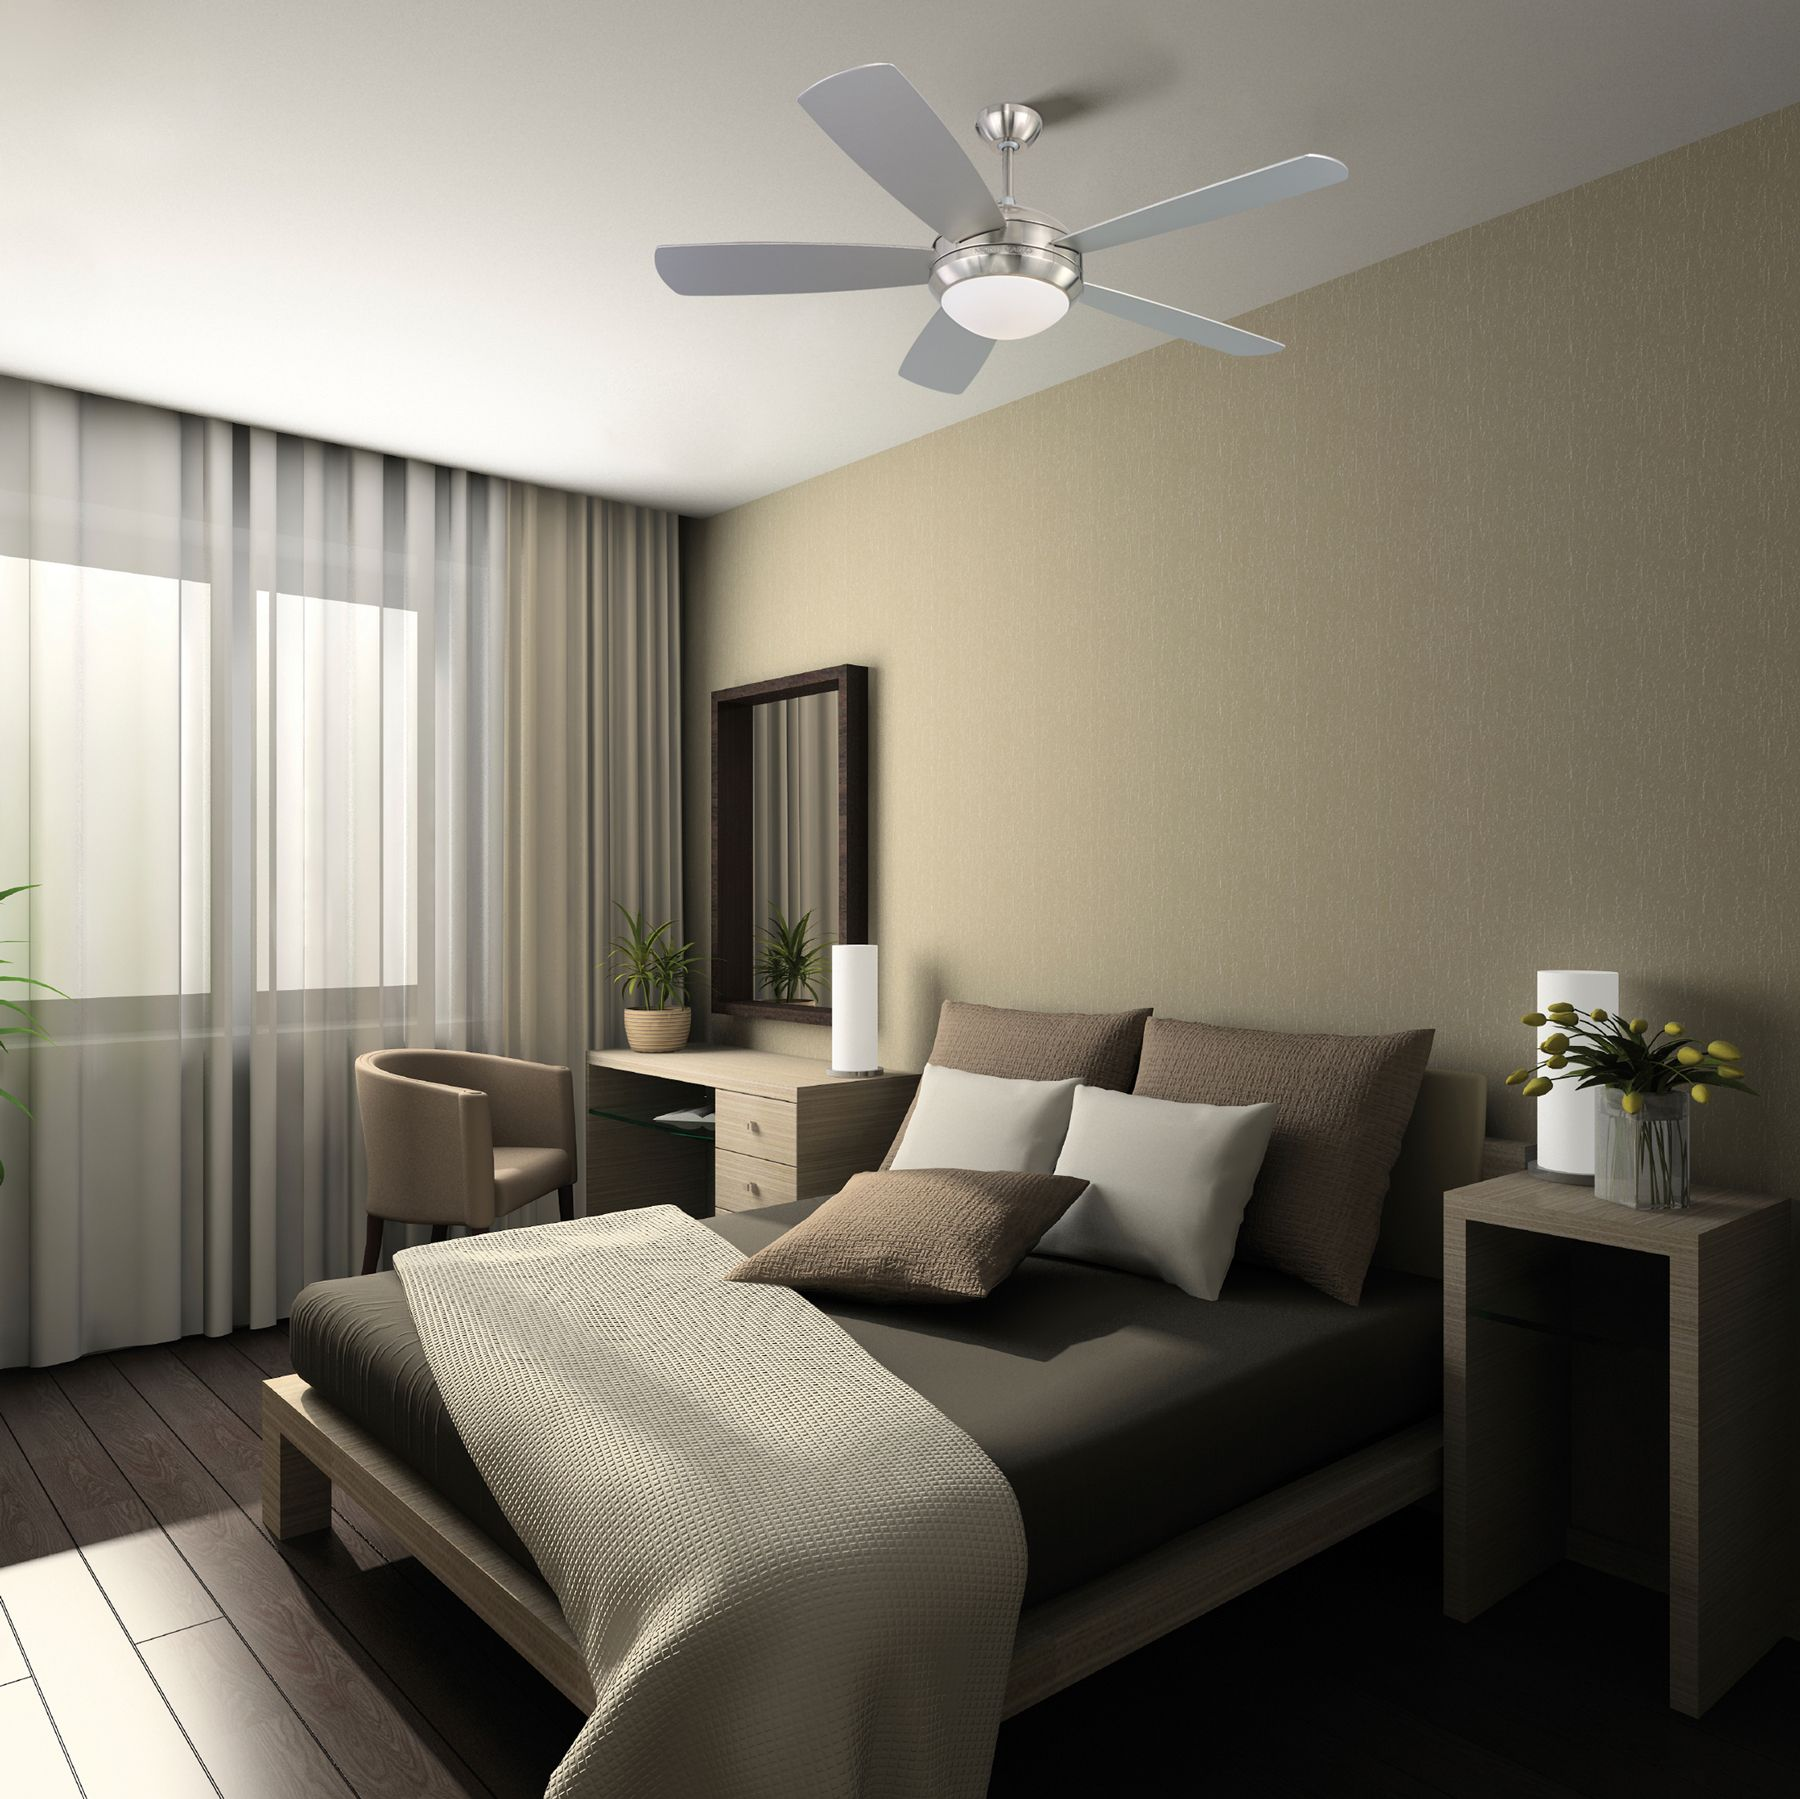 Discus Ceiling Fan Monte Carlo At Lightology Suites Guestrooms  ~ Decoracion De Interiores Dormitorios